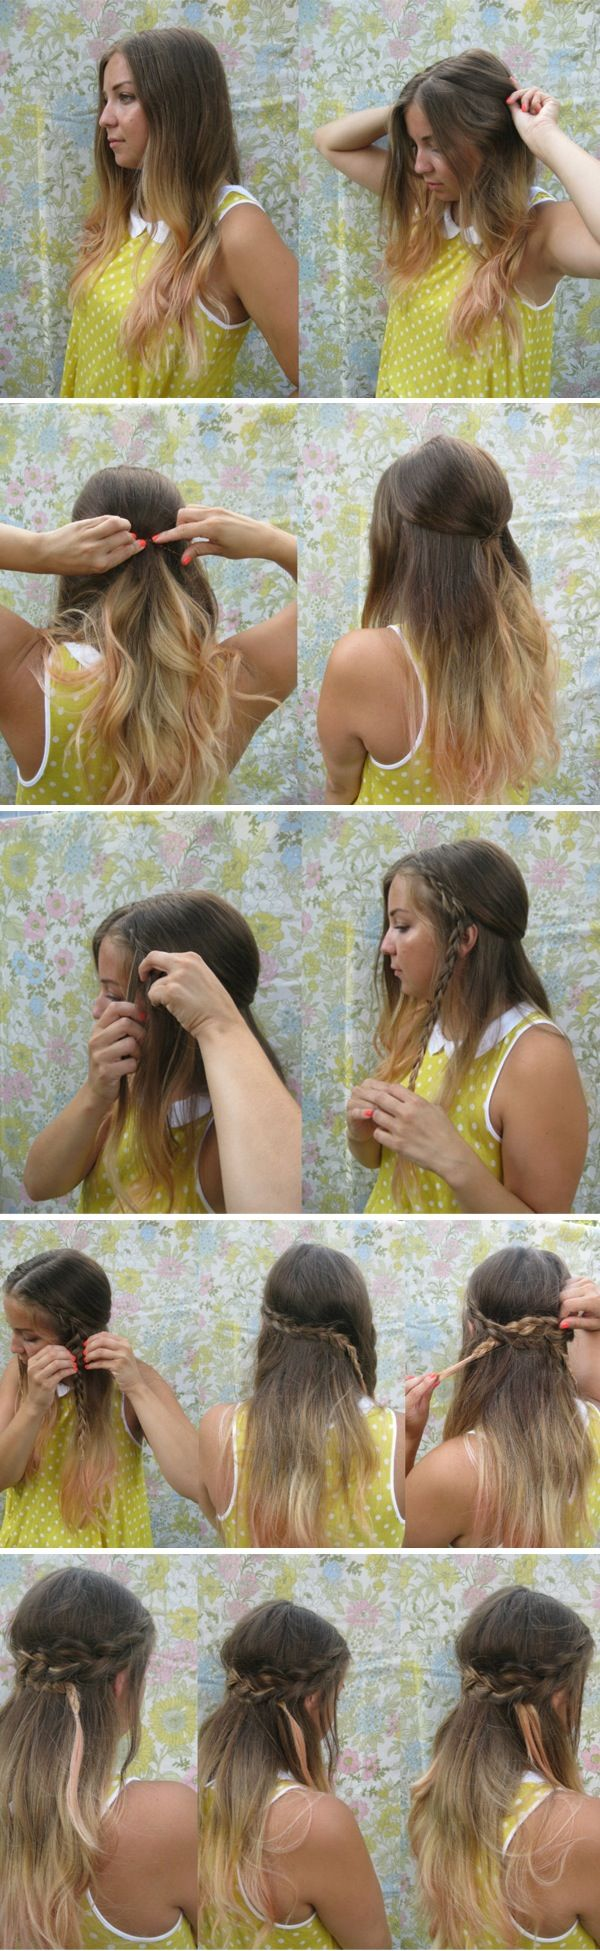 diy hair brides